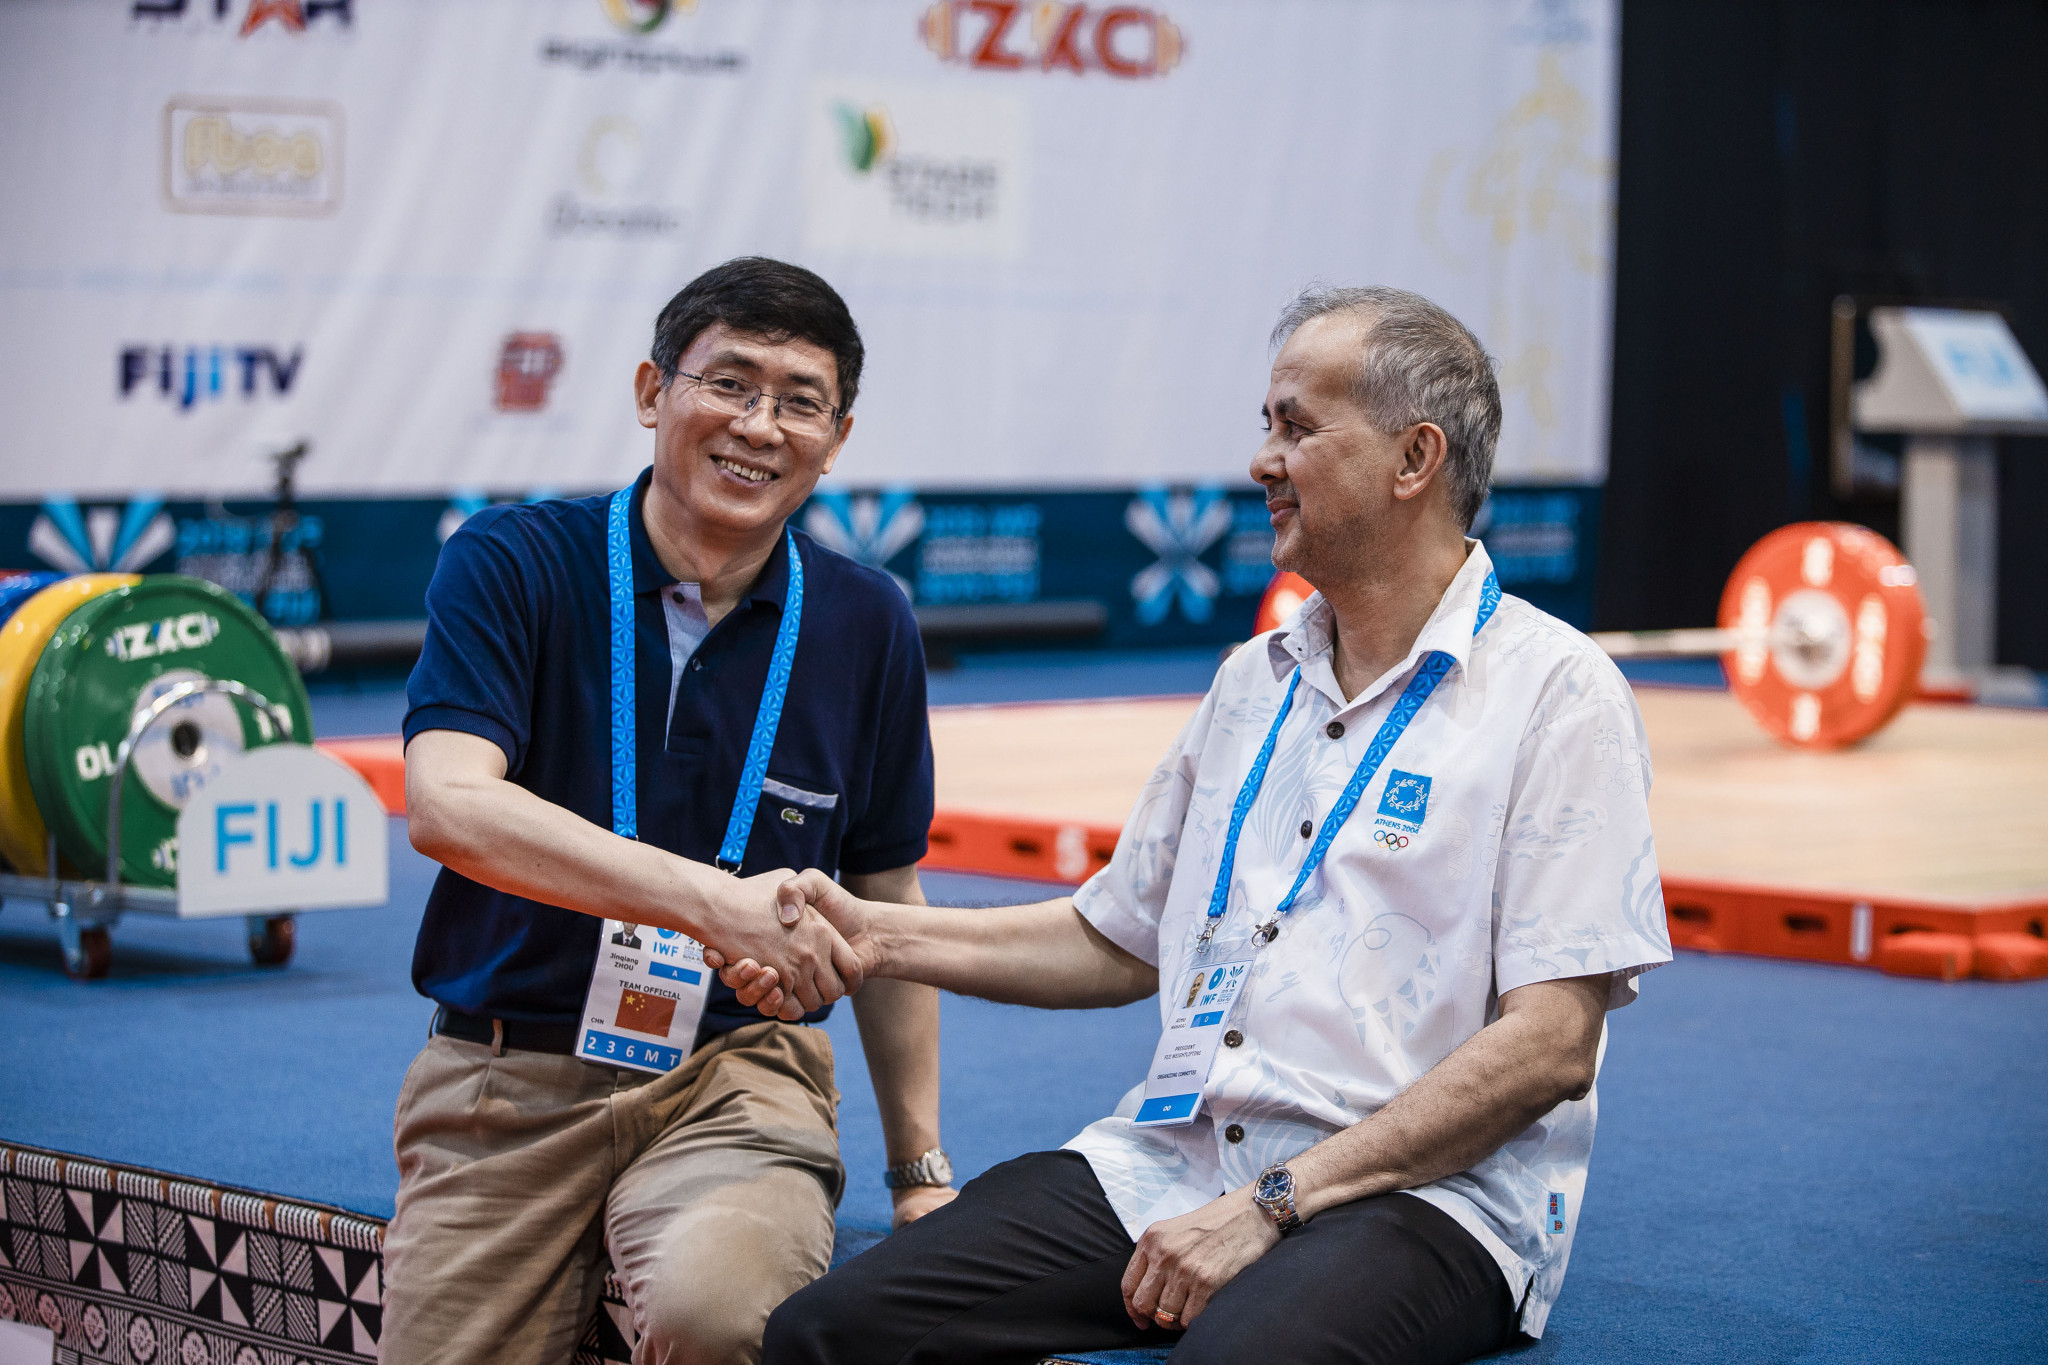 President of the Chinese Weightlifting Federation Jinqiang Zhou, left, said he believed the eligibility rules should have been issued earlier to avoid some candidates gaining an